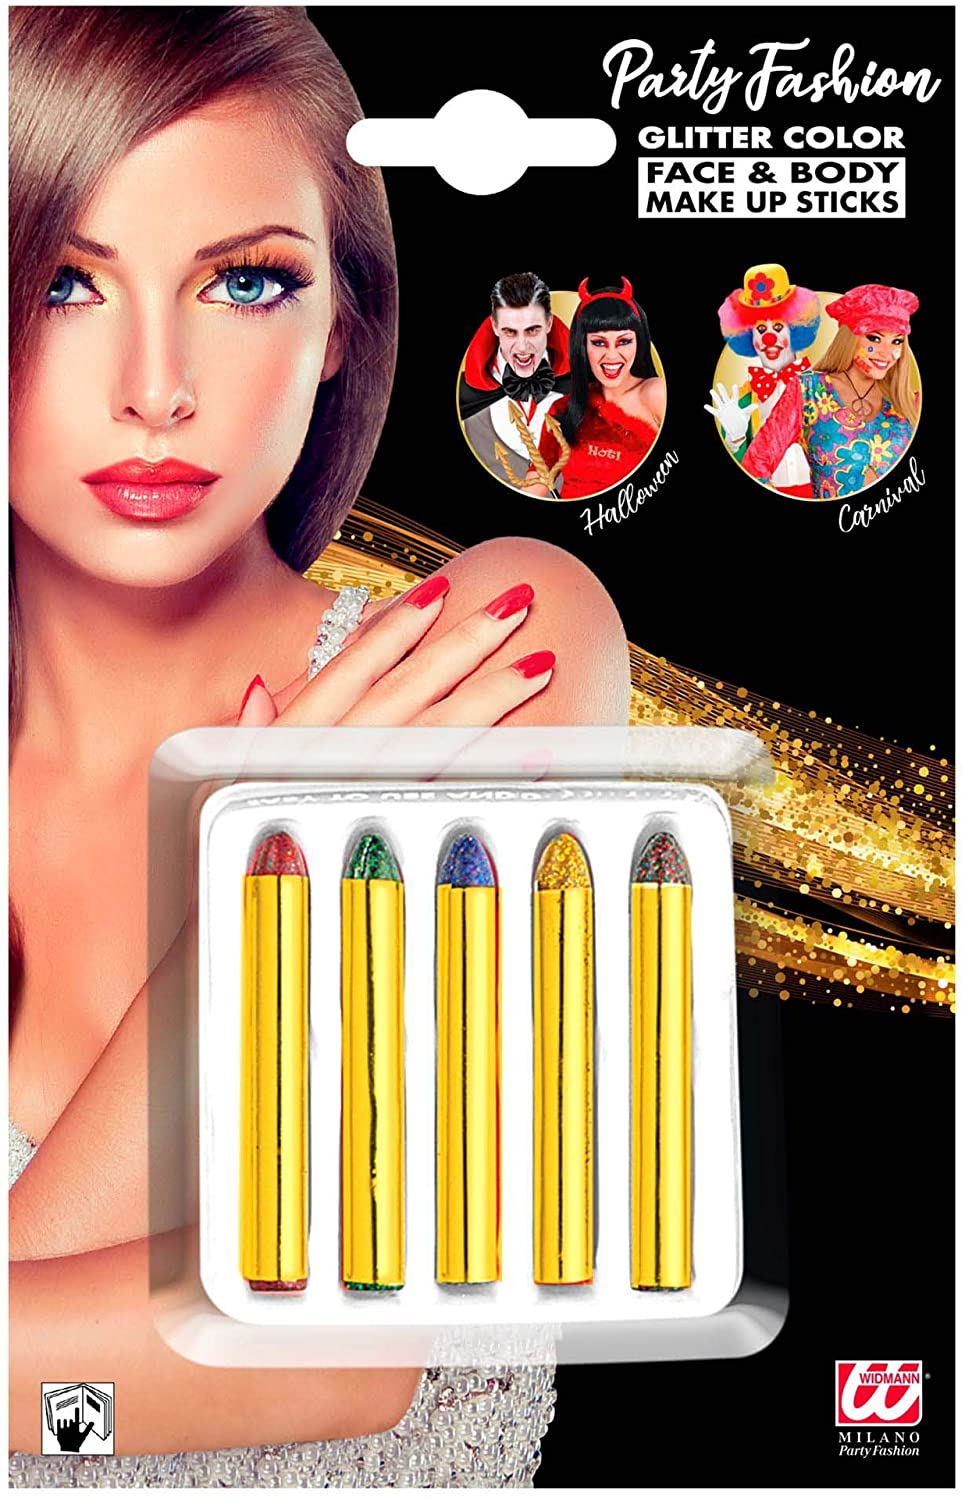 5 Pack Of Glitter Make Up Sticks